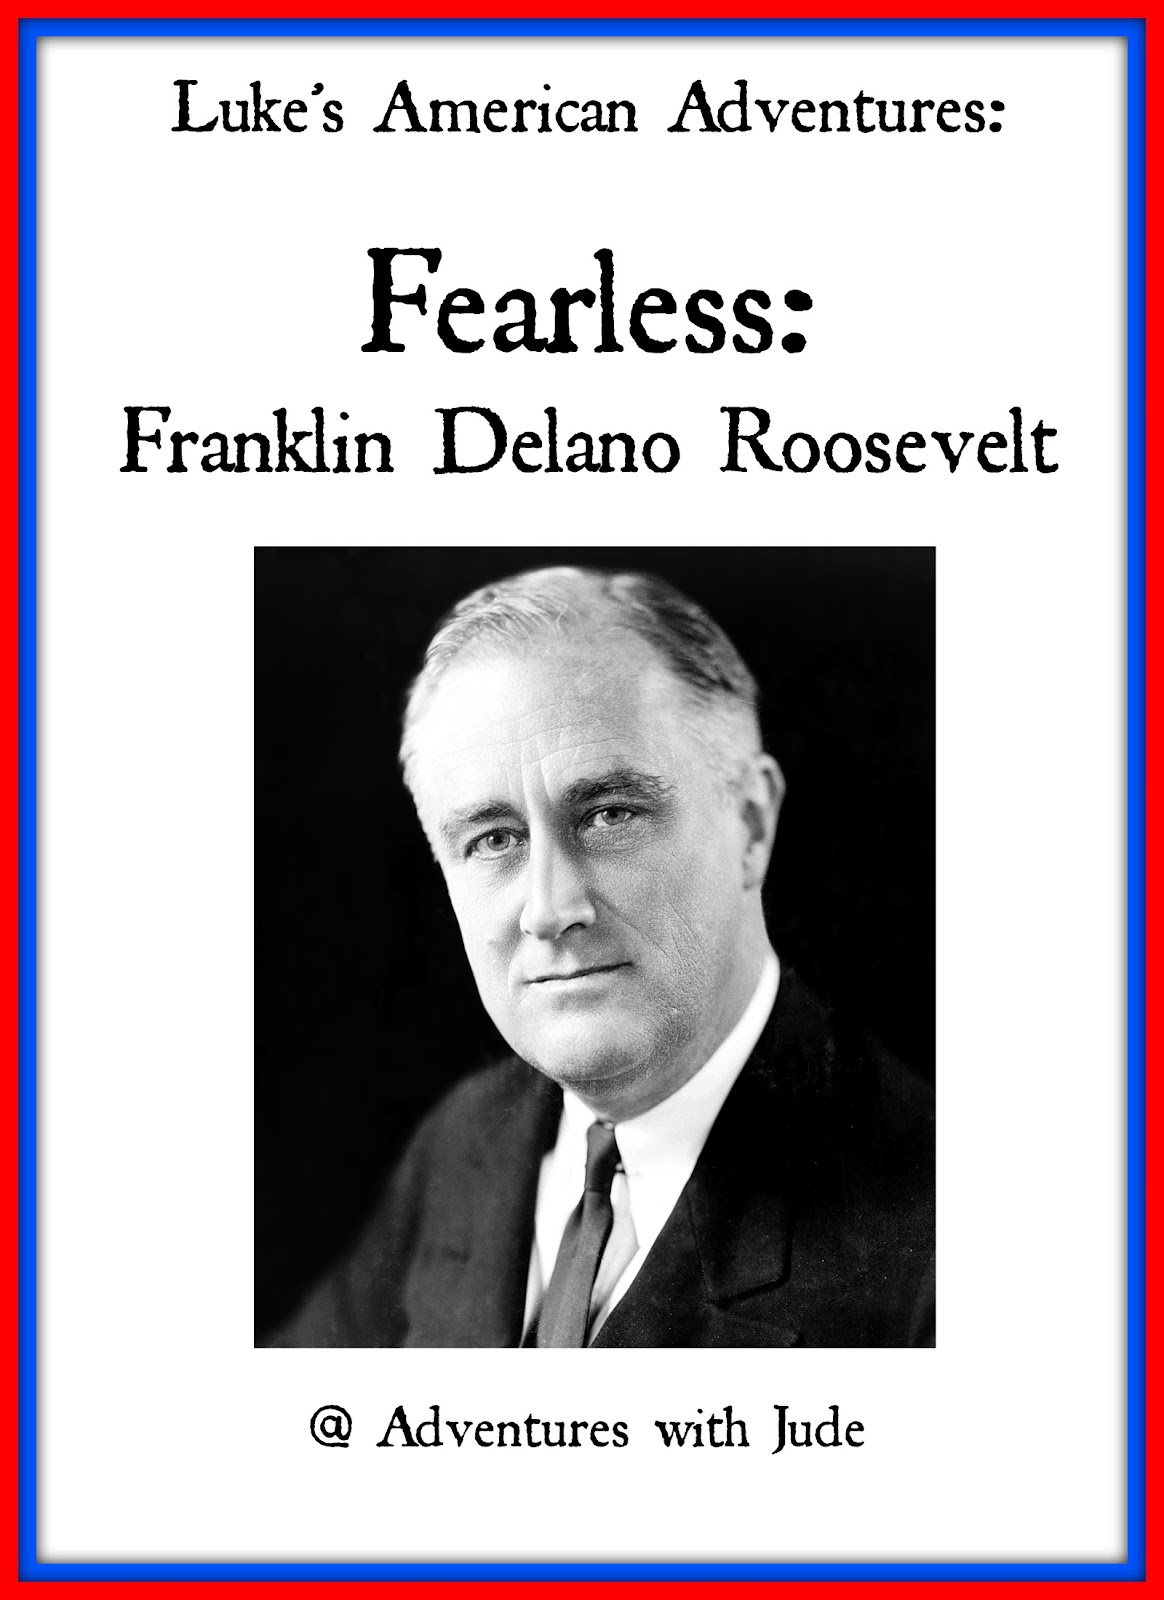 an analysis of categorizing president franklin d roosevelt